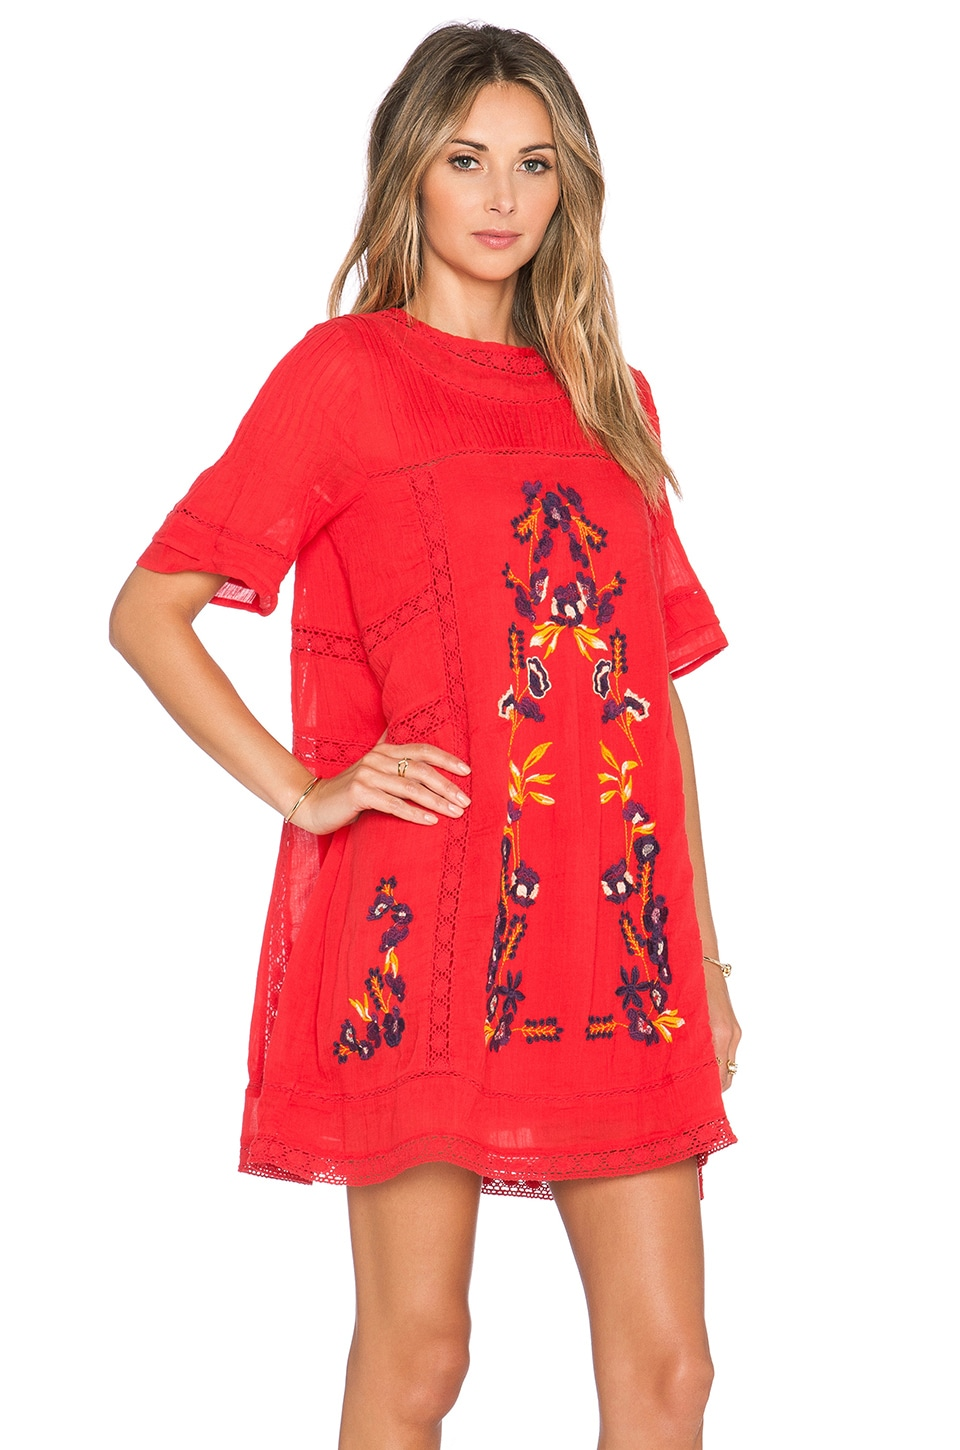 Free People Perfectly Victorian Dress in Tomato - REVOLVE